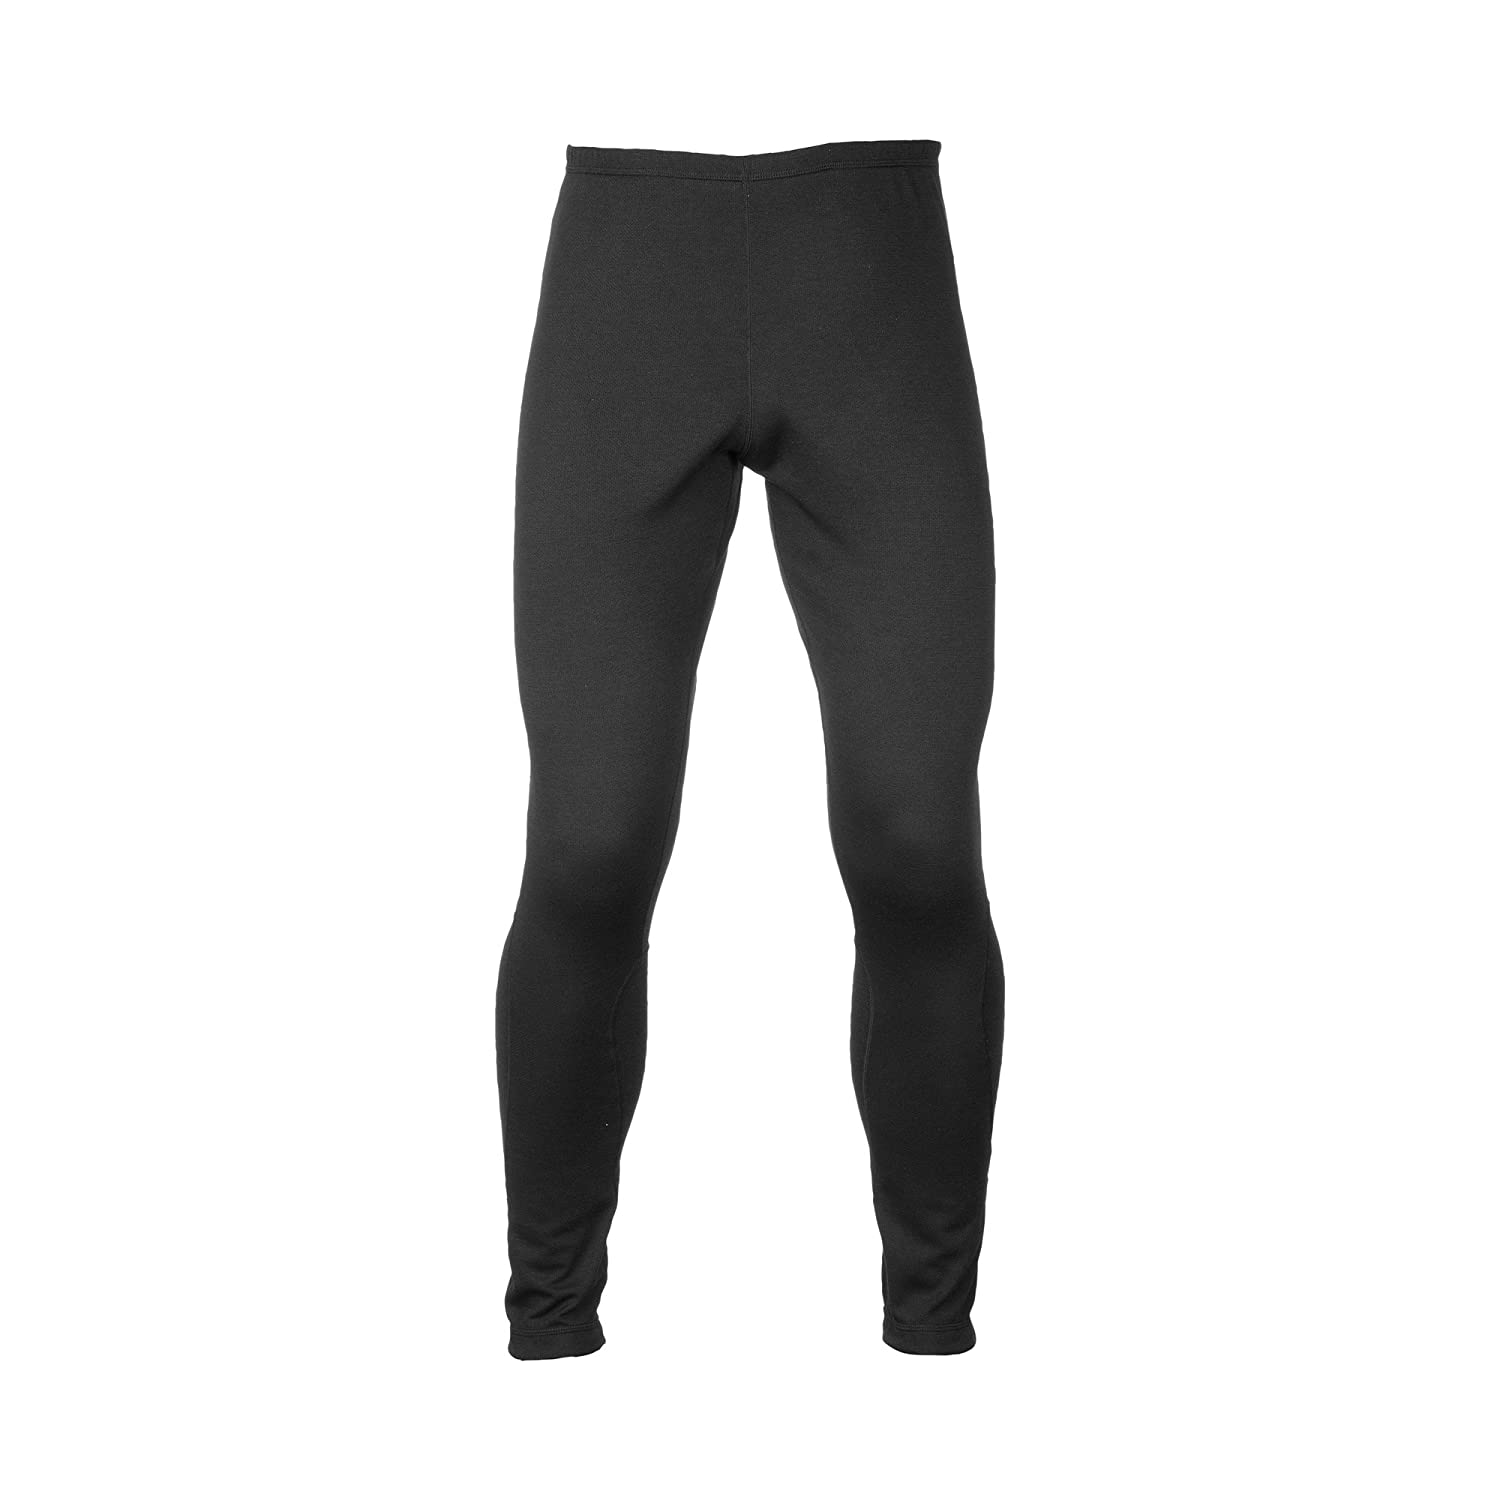 Kathmandu merinoBASE Men Women Merino Wool Long Johns